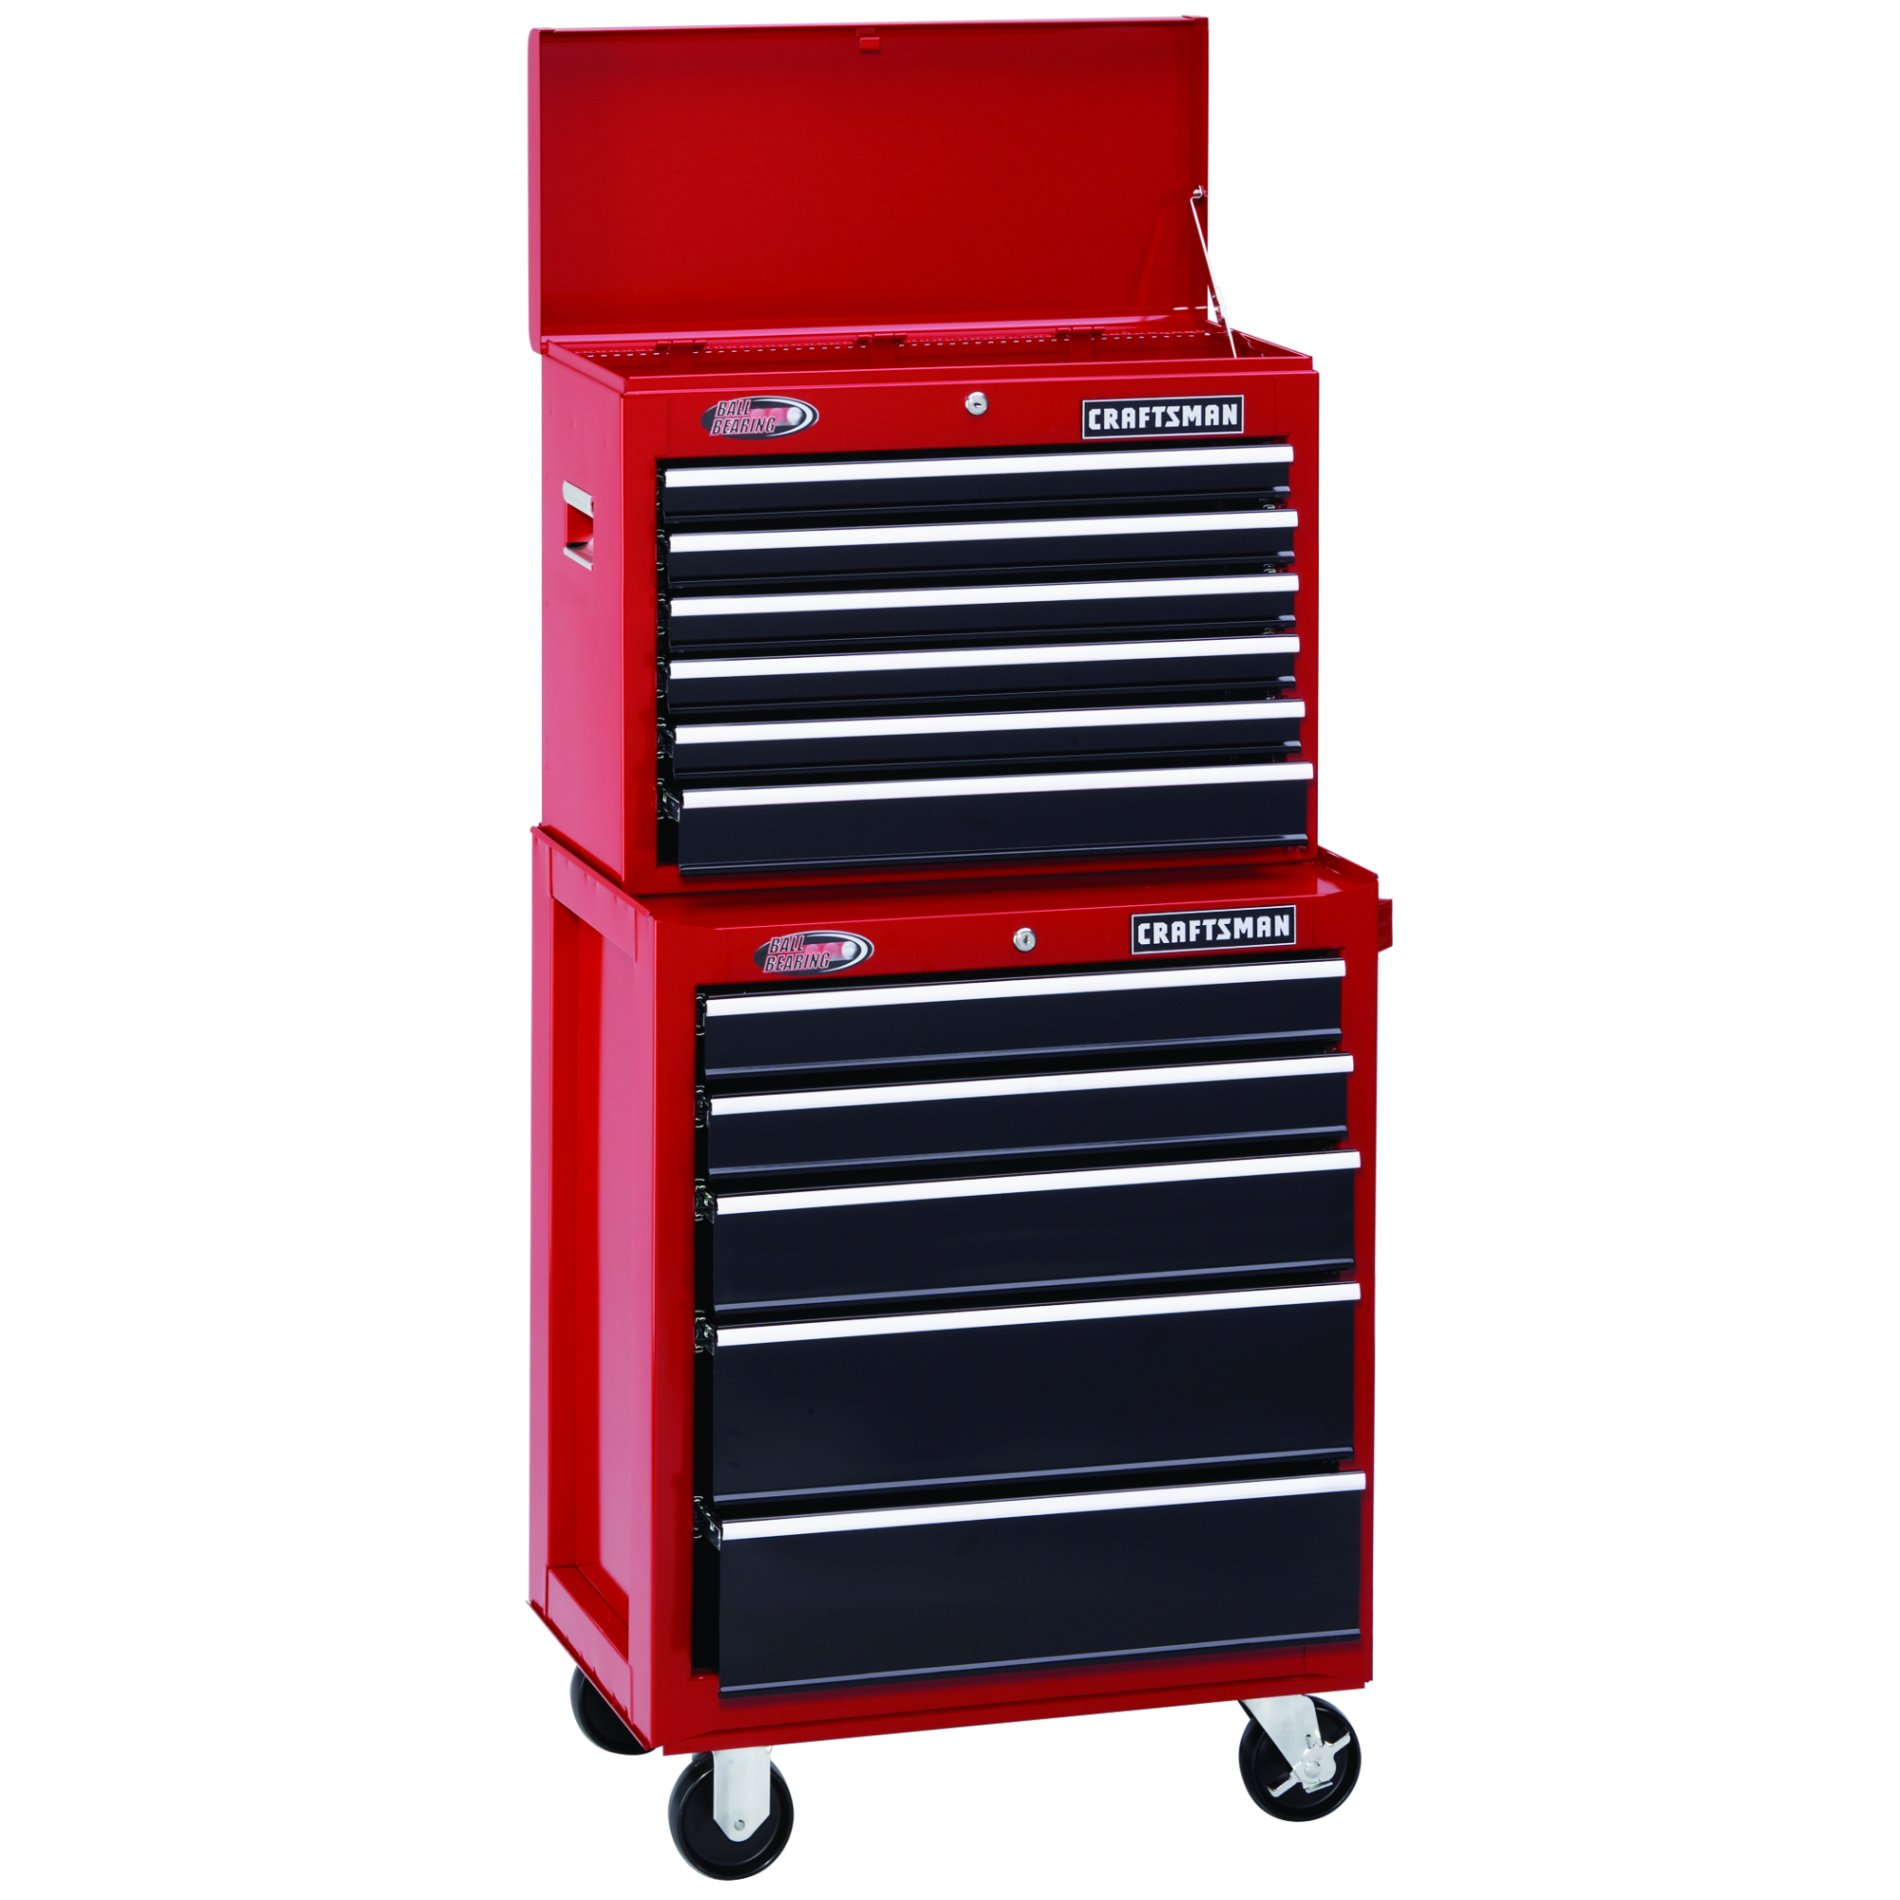 "Craftsman 26"" Wide 6-Drawer Ball-Bearing Top Chest - Red/Black"